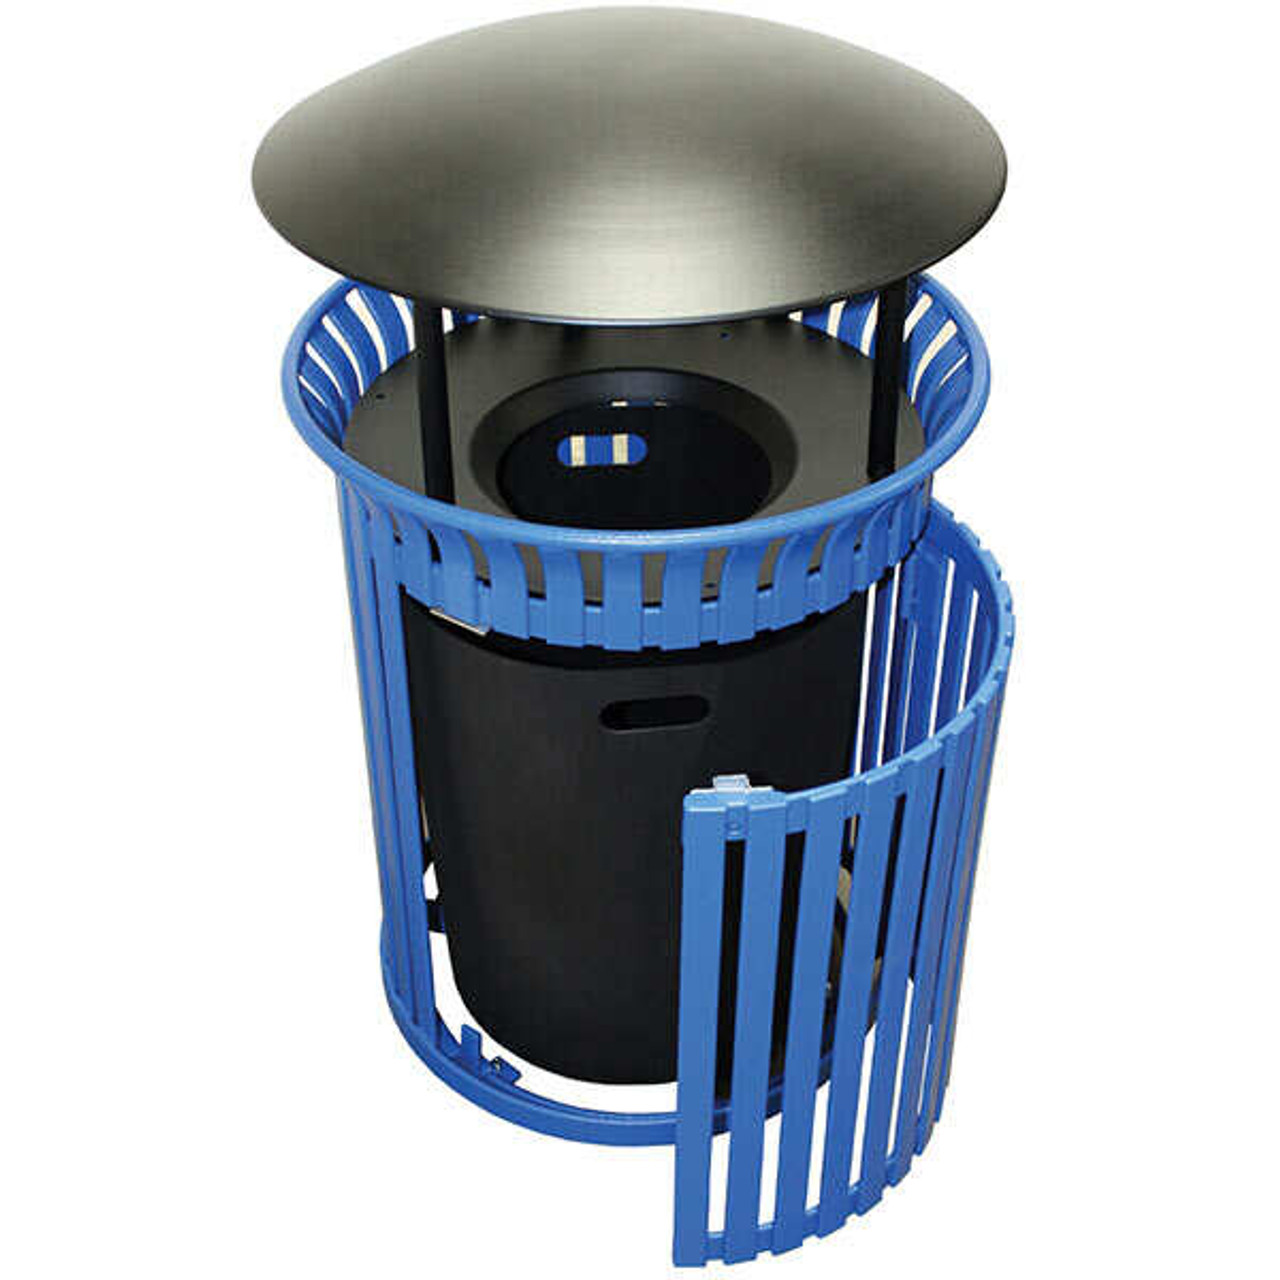 40 Gallon Steel Outdoor Covered Waste Receptacle MF3228 with Side Door